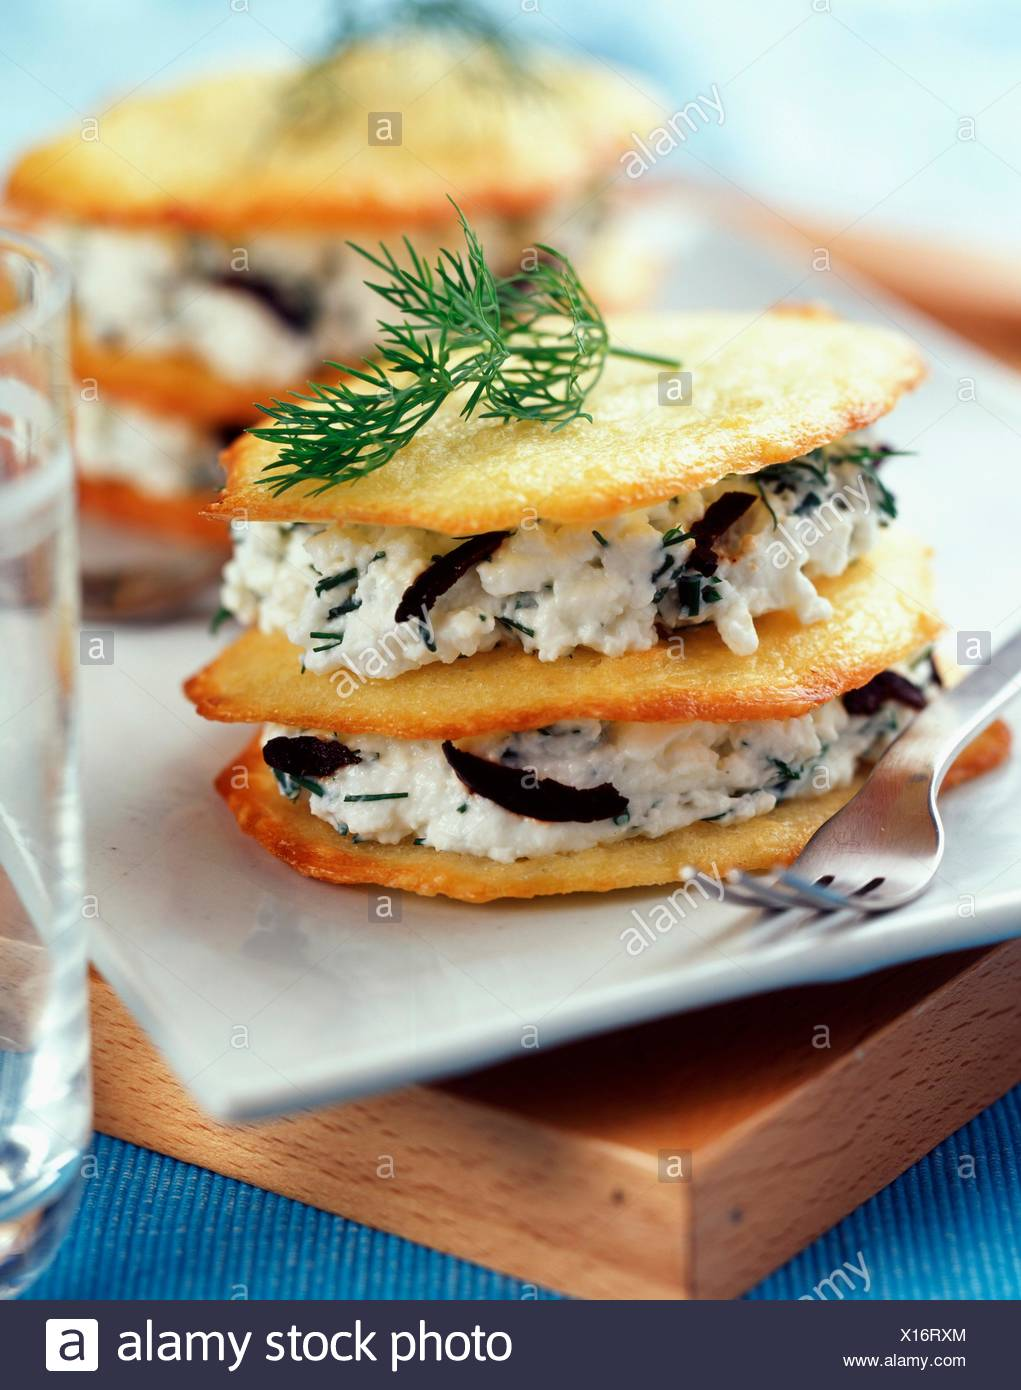 Layered thin cheese biscuits and fromage frais with olives - Stock Image